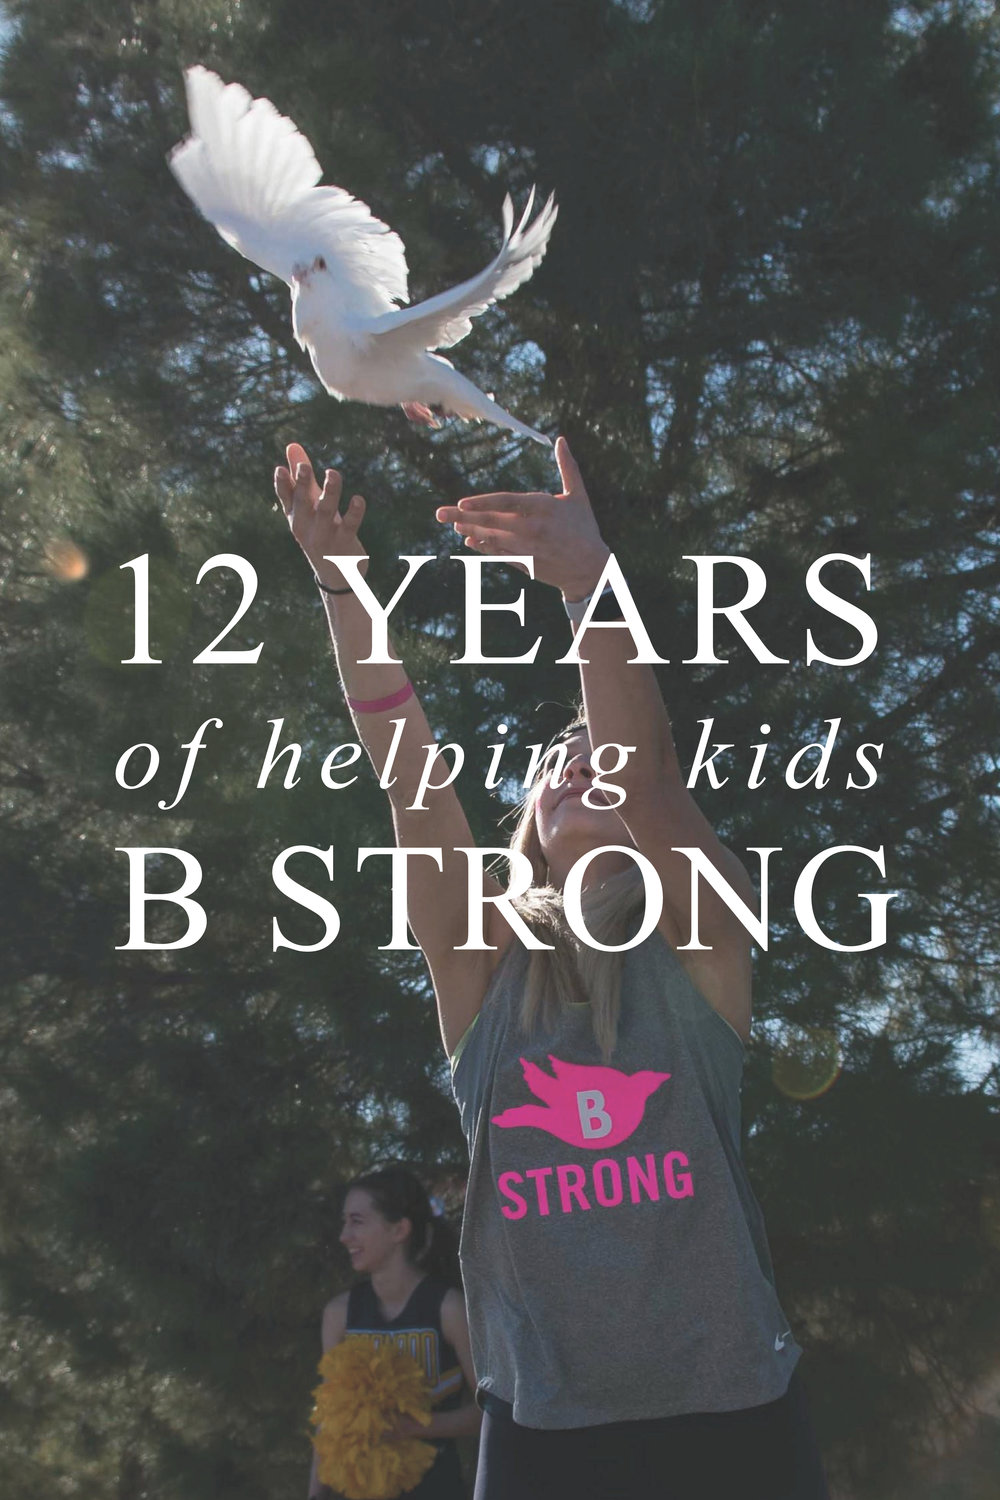 10yearshelpingkidsbstrong.jpg